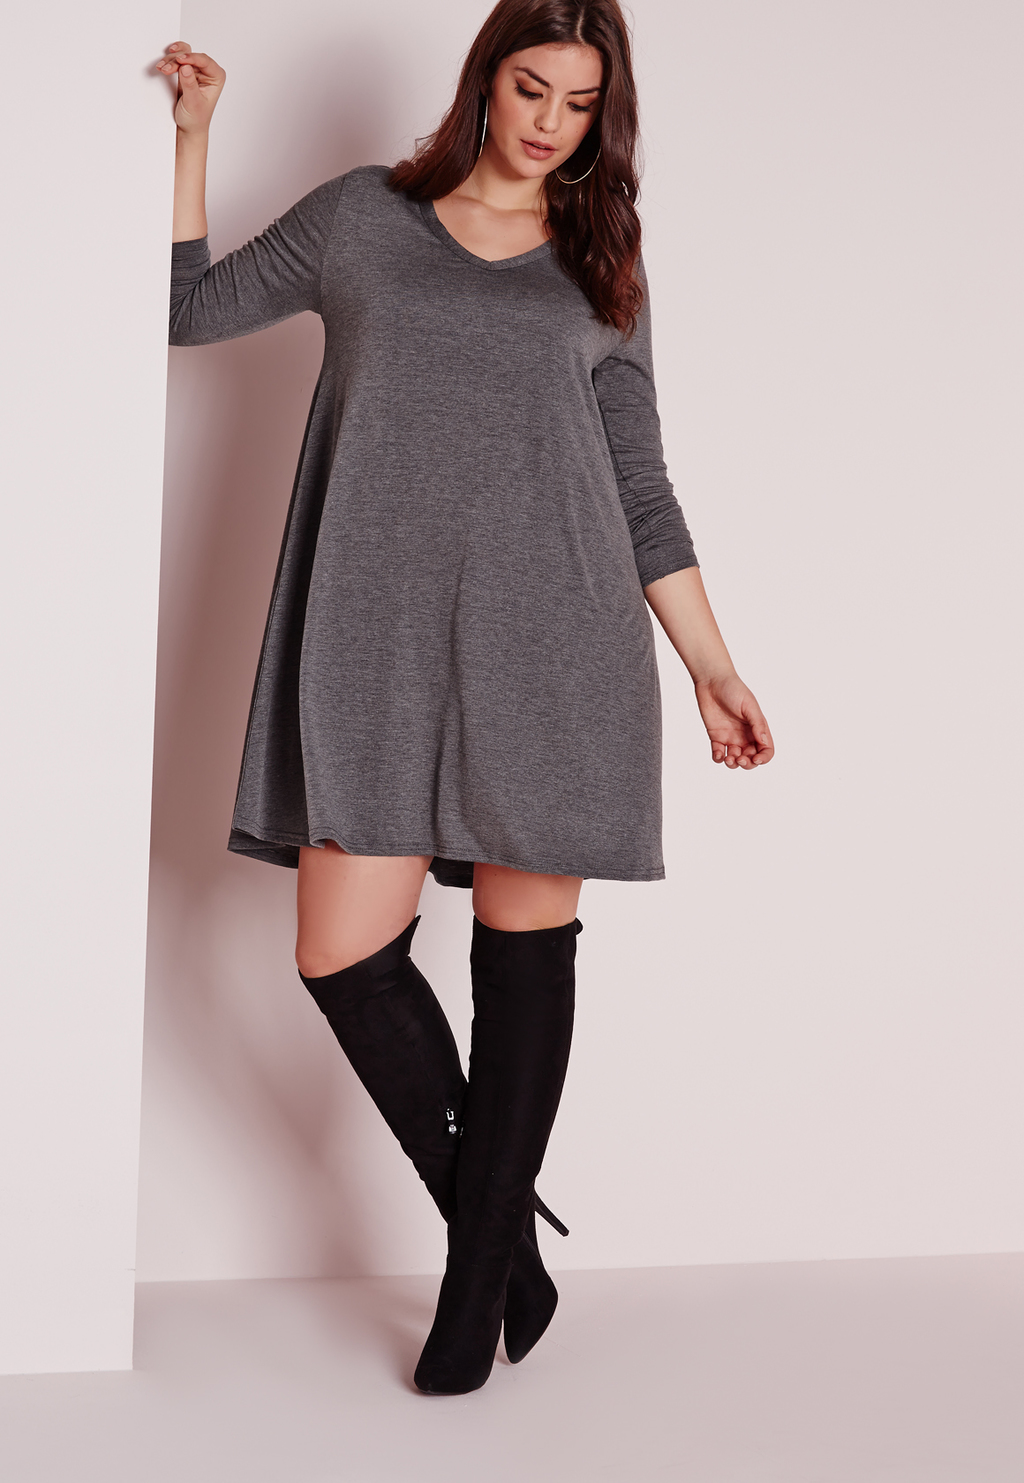 Plus Size V Neck Swing Dress Grey, Grey - style: trapeze; length: mid thigh; neckline: v-neck; fit: loose; pattern: plain; predominant colour: charcoal; occasions: casual, creative work; fibres: viscose/rayon - stretch; sleeve length: 3/4 length; sleeve style: standard; pattern type: fabric; texture group: other - light to midweight; season: s/s 2016; wardrobe: basic